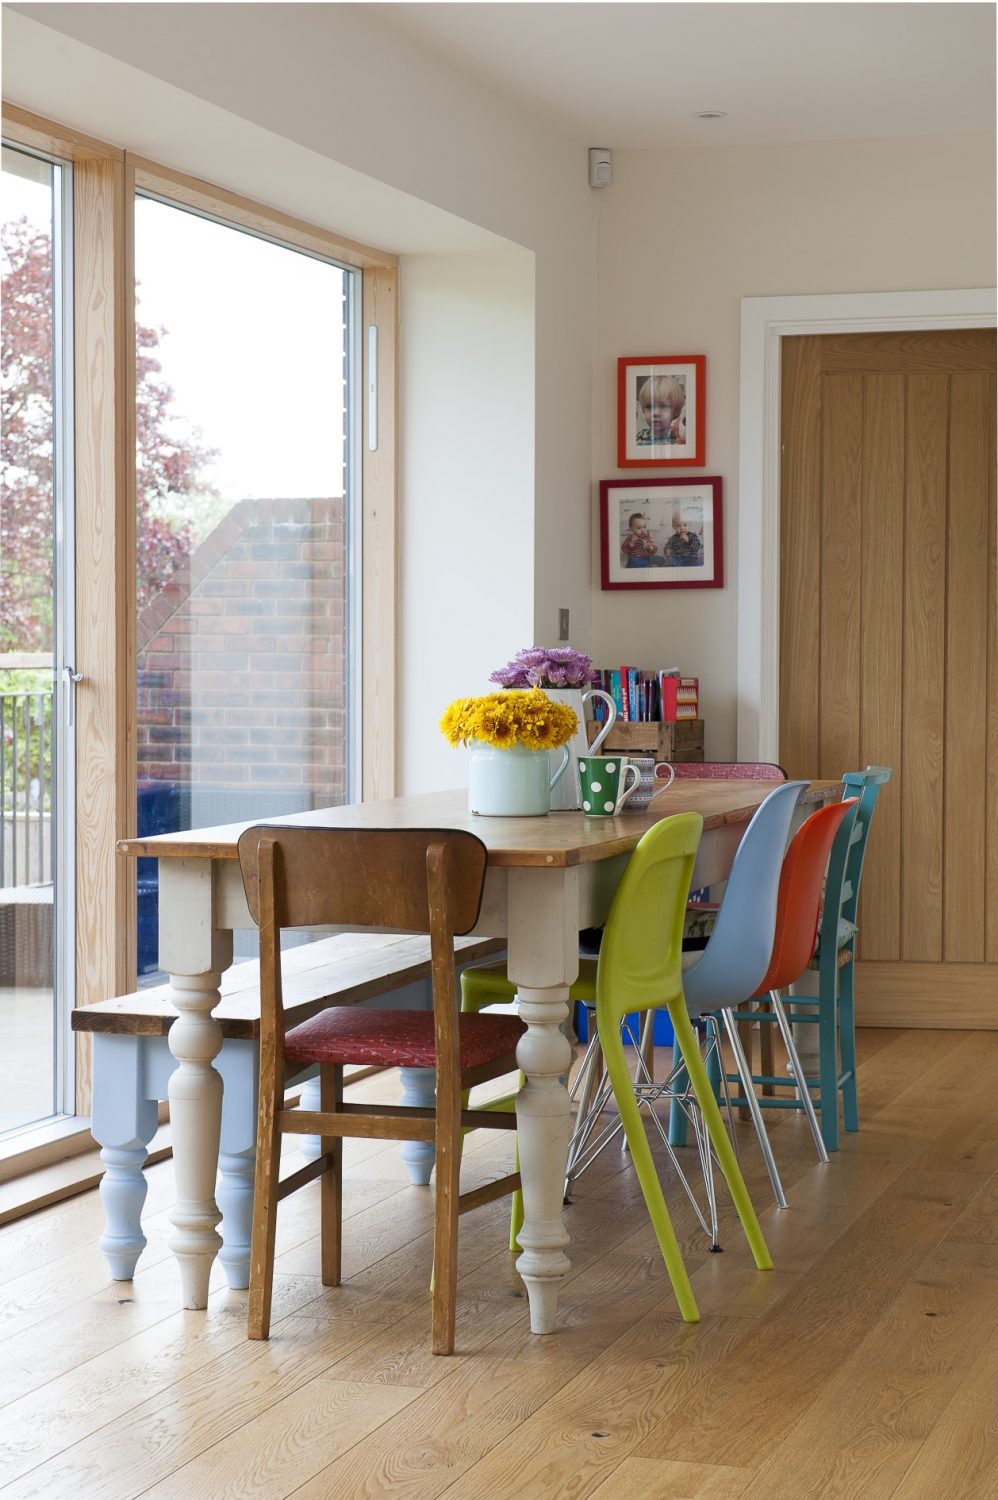 On one side of the pine dining table gather a mix of plastic and metal 1950s/60s and Ikea chairs